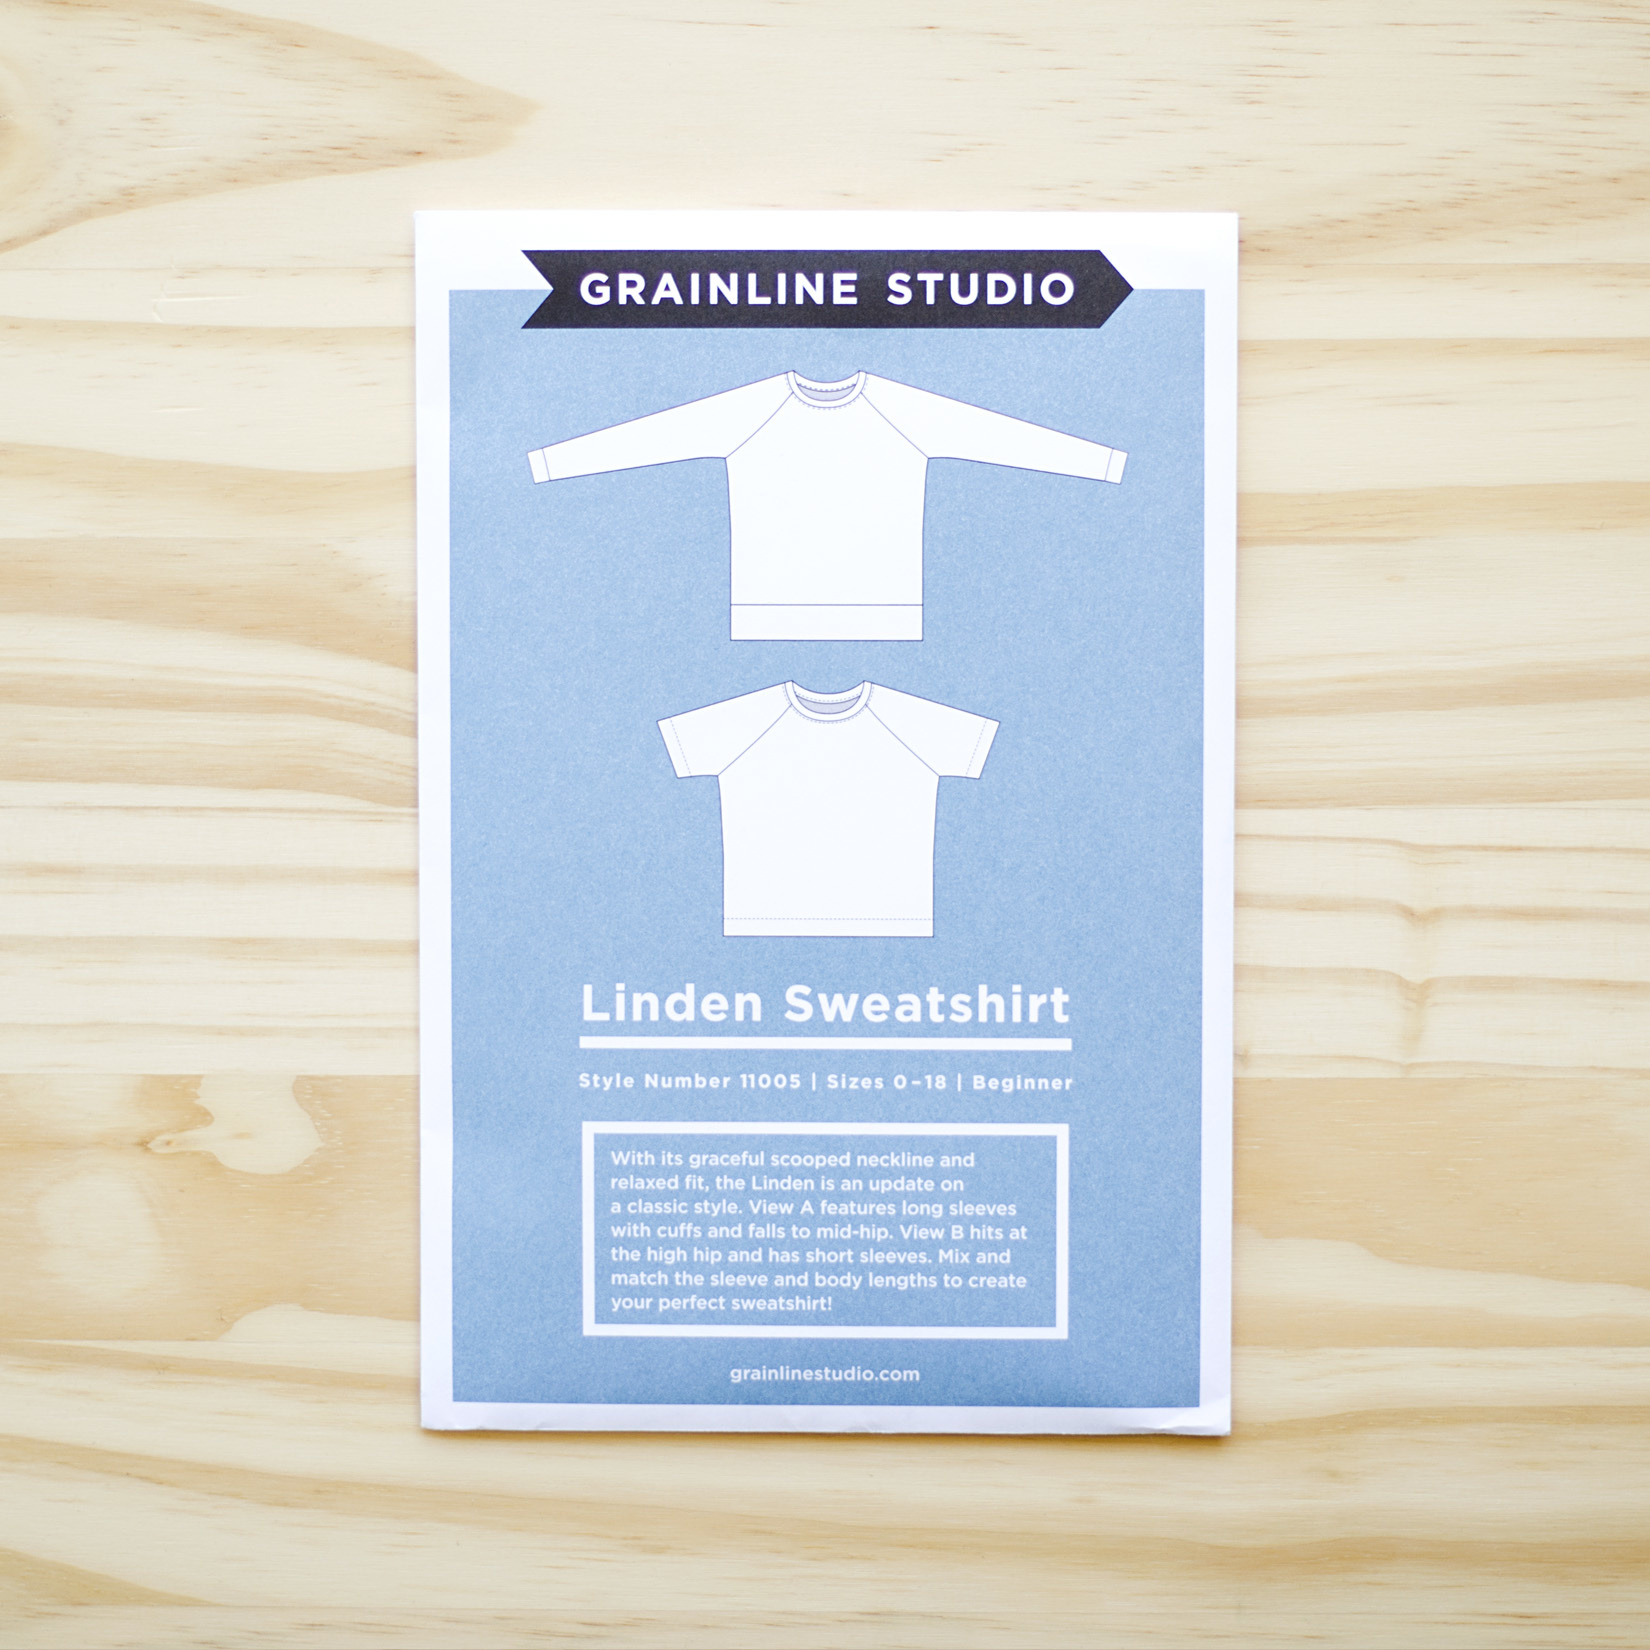 Grainline Studio : Sewing Pattern : Linden Sweatshirt